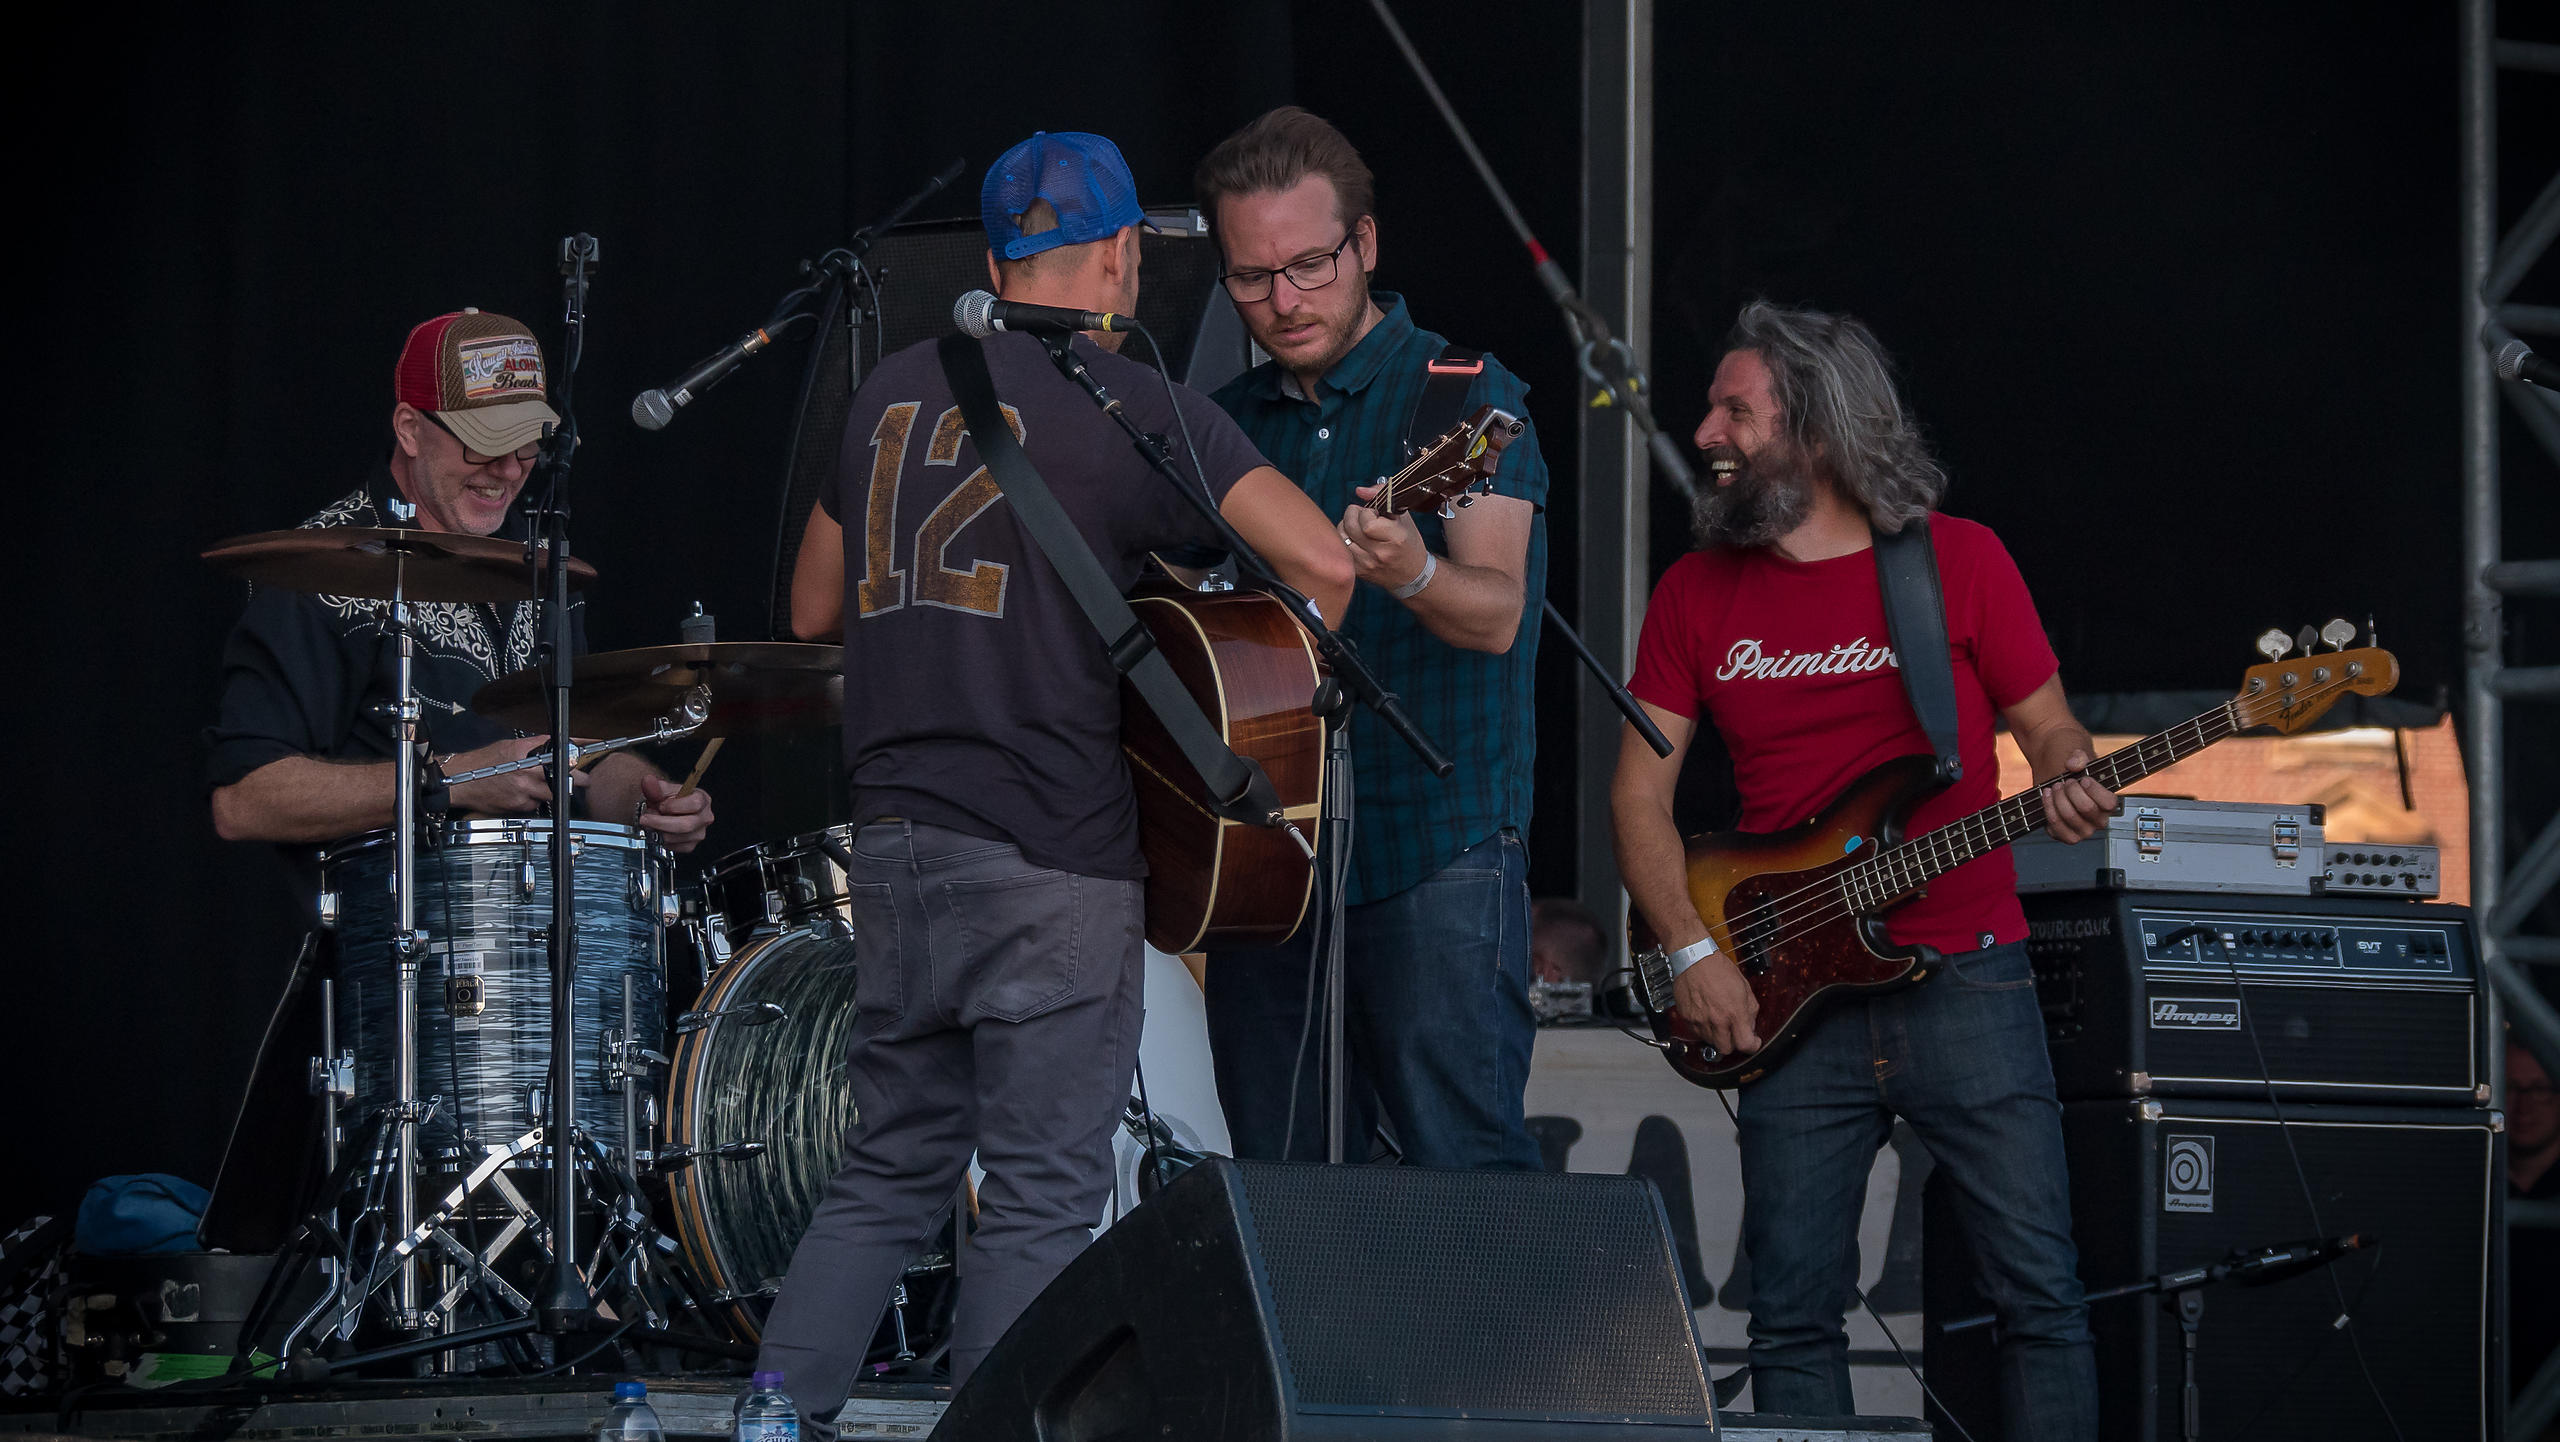 Turin Brakes Delight the Audience on Sunday Afternoon on the Main Stage at Victorious Festival 2017